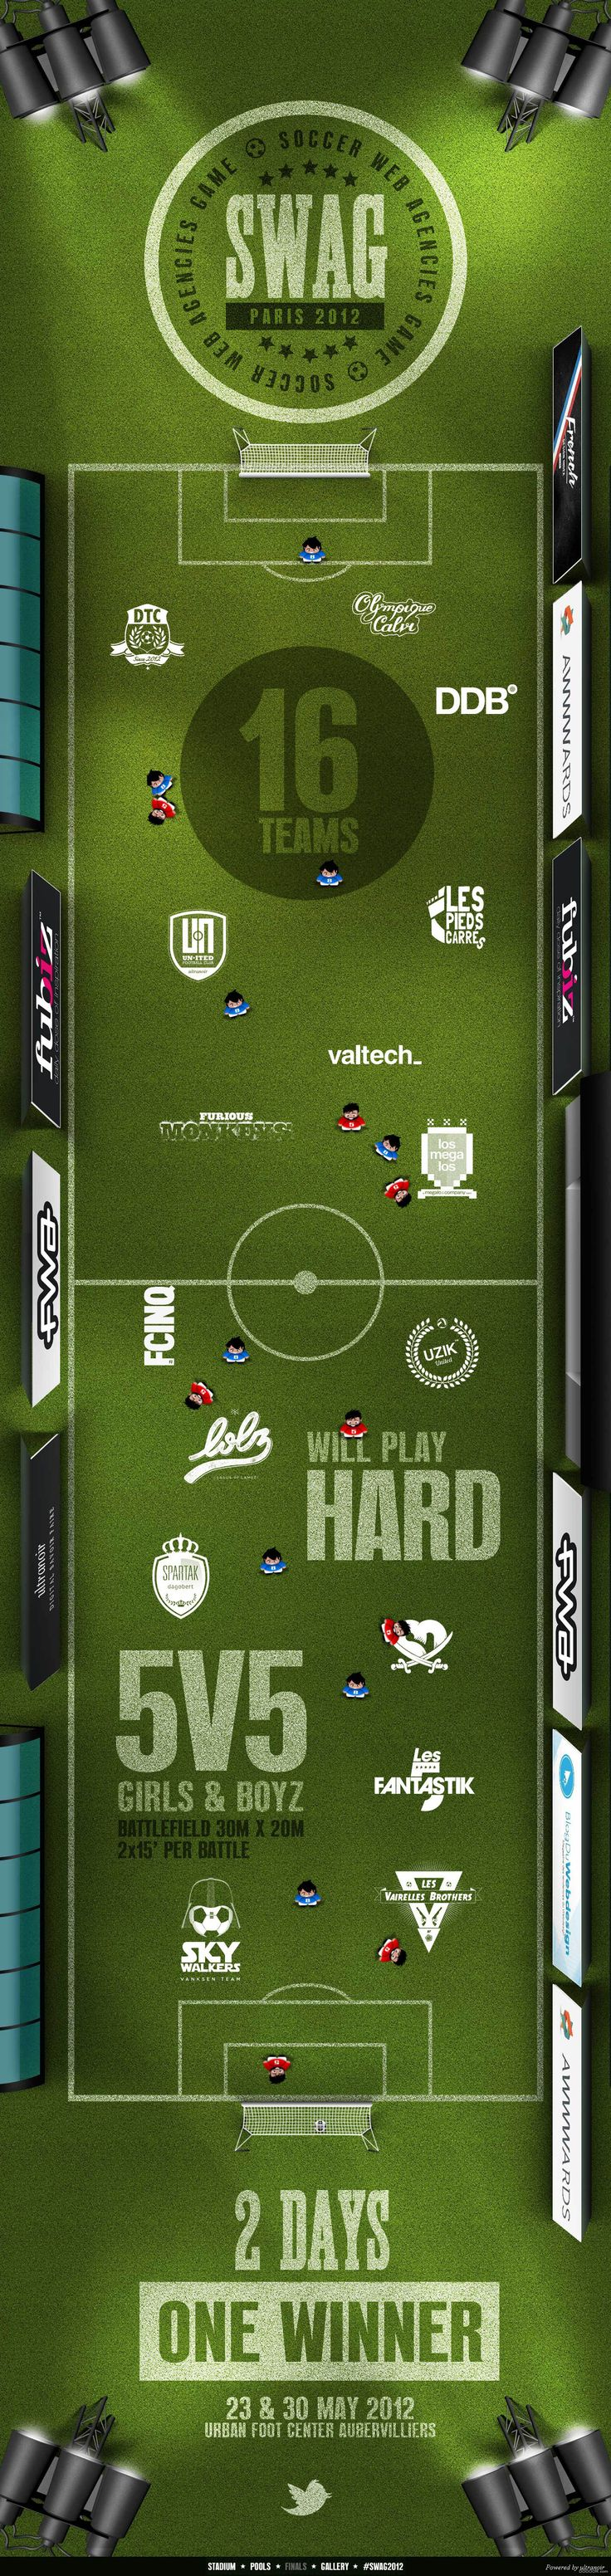 SWAG football game page design.jpg